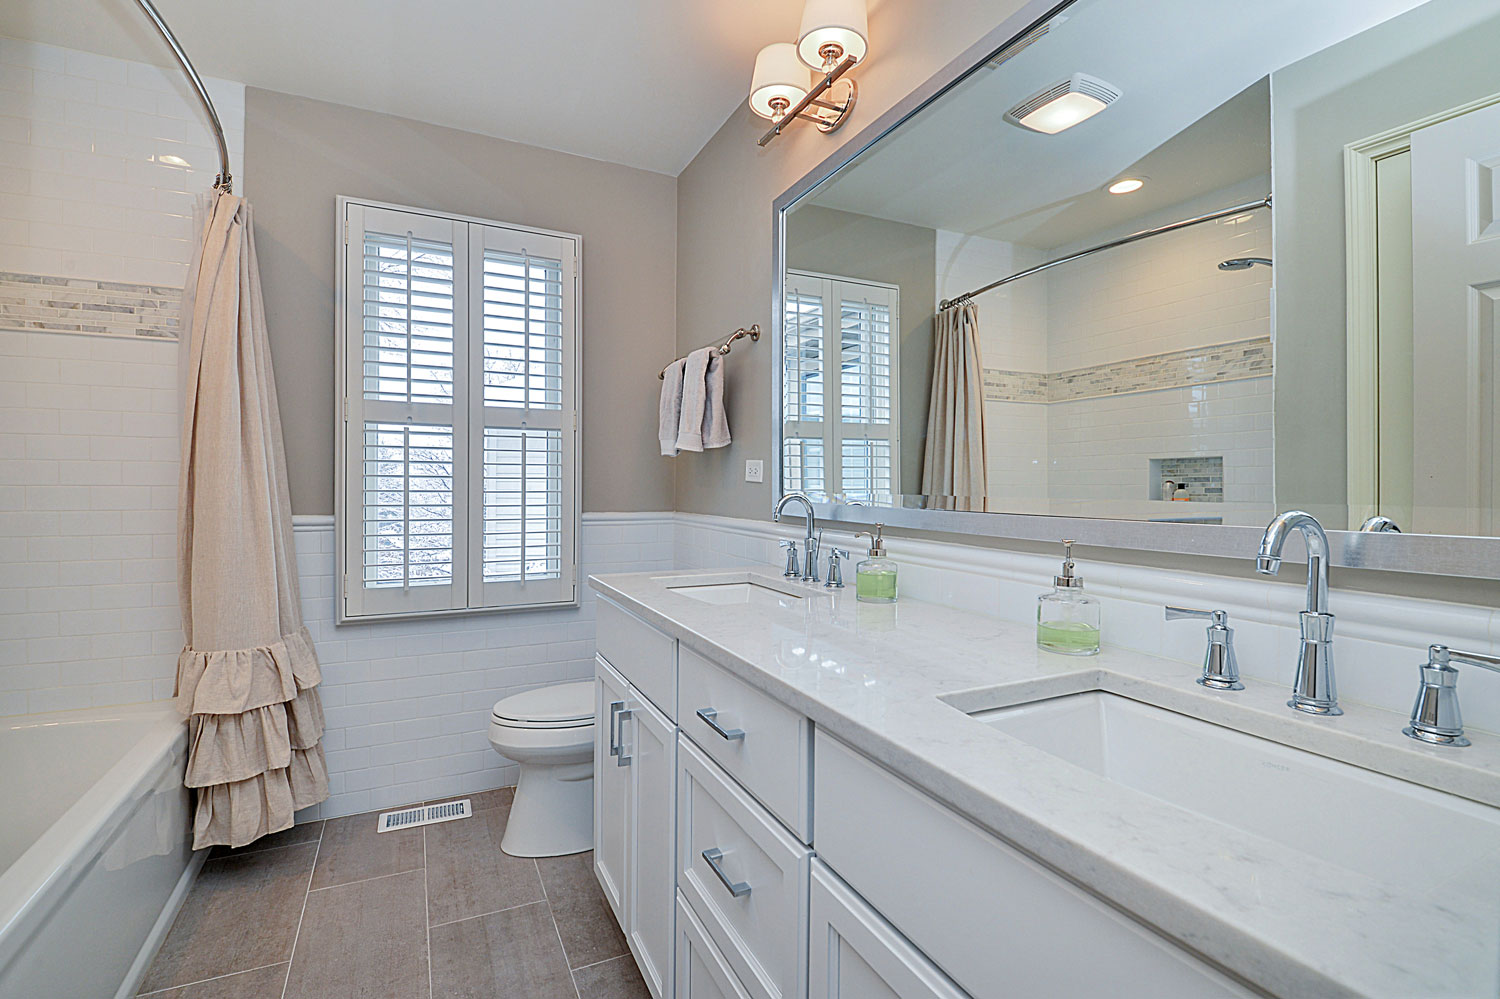 Carl S Hall Bathroom Remodel Pictures Home